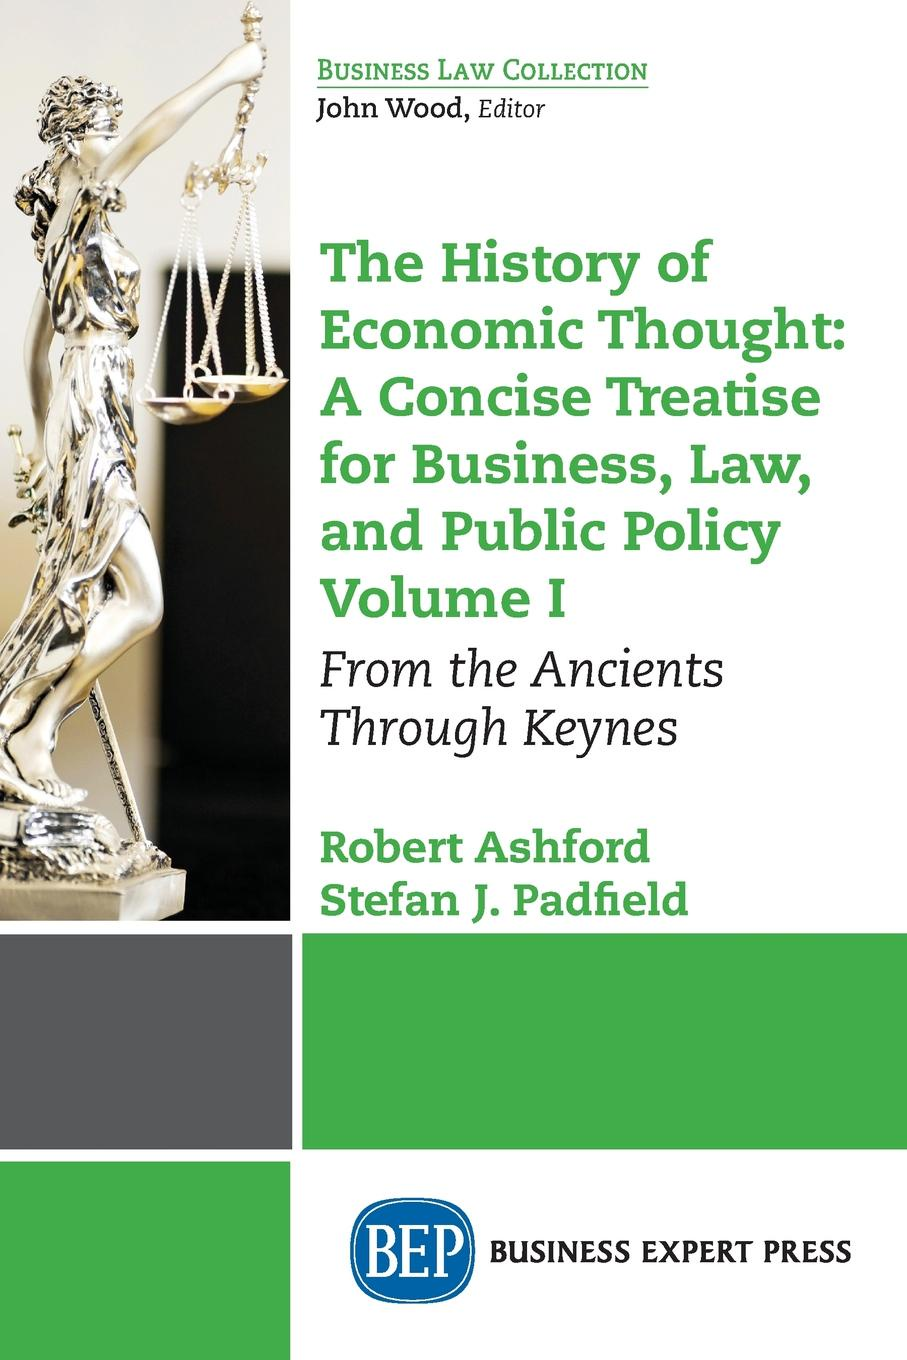 Robert Ashford, Stefan J. Padfield The History of Economic Thought. A Concise Treatise for Business, Law, and Public Policy Volume I: From the Ancients Through Keynes kuno meyer cain adamnain an old irish treatise on the law of adamnan